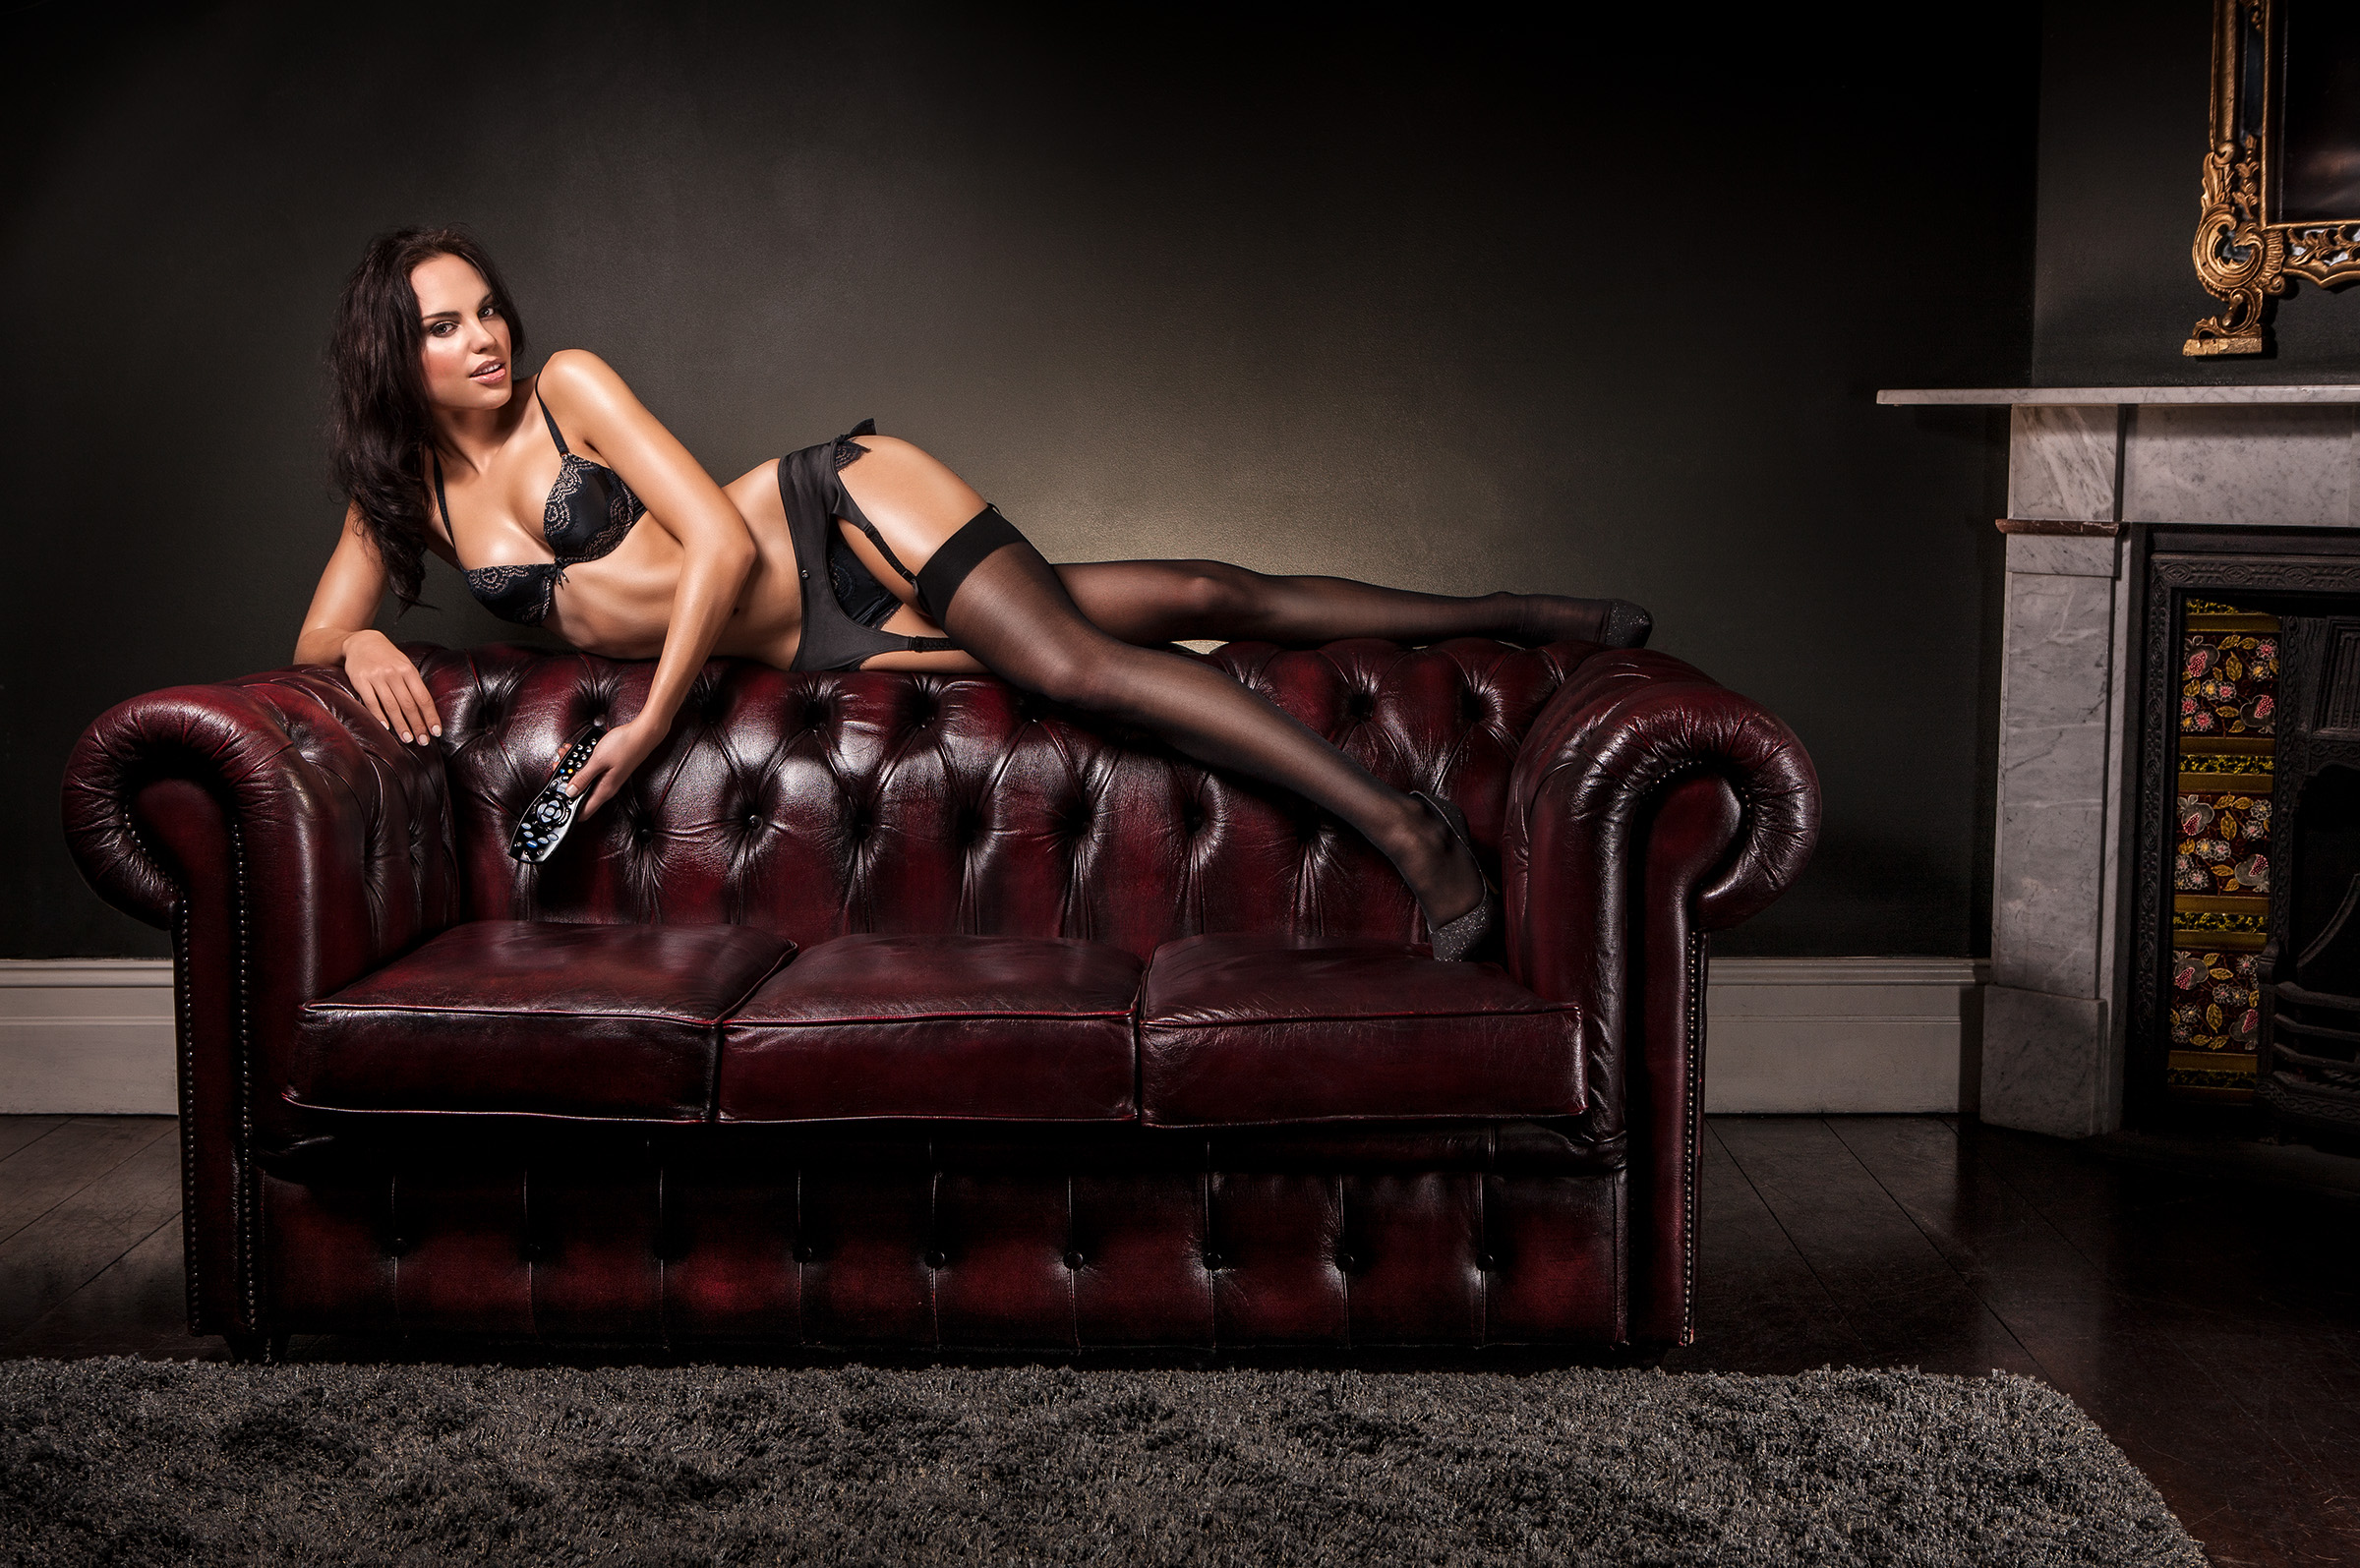 Adverting campaign photography for SBS World Movies of brunette in black lingerie on Chesterfield sofa in front of fireplace location photography